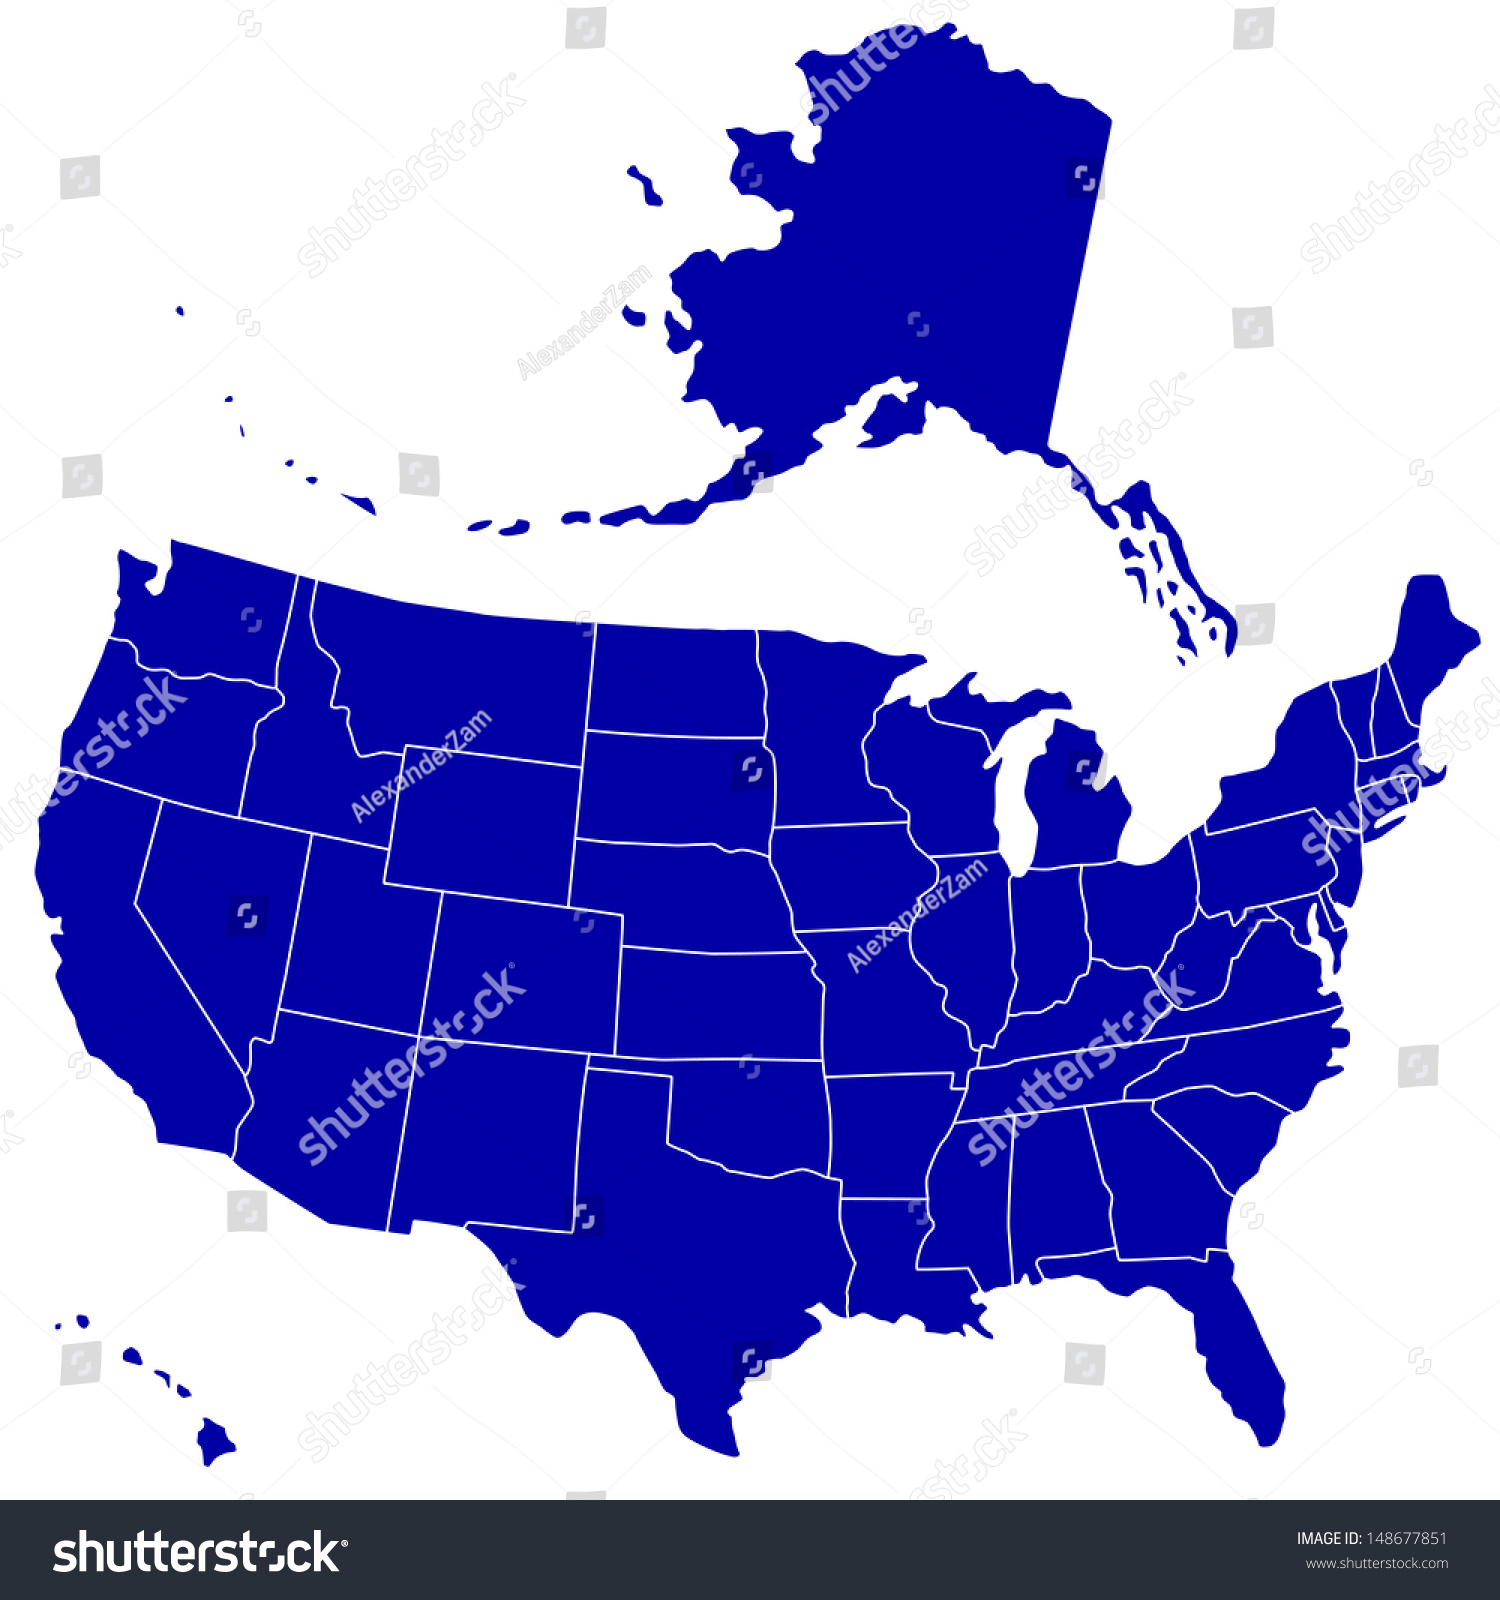 Silhouette Map Of The Usa Source Of Map Www